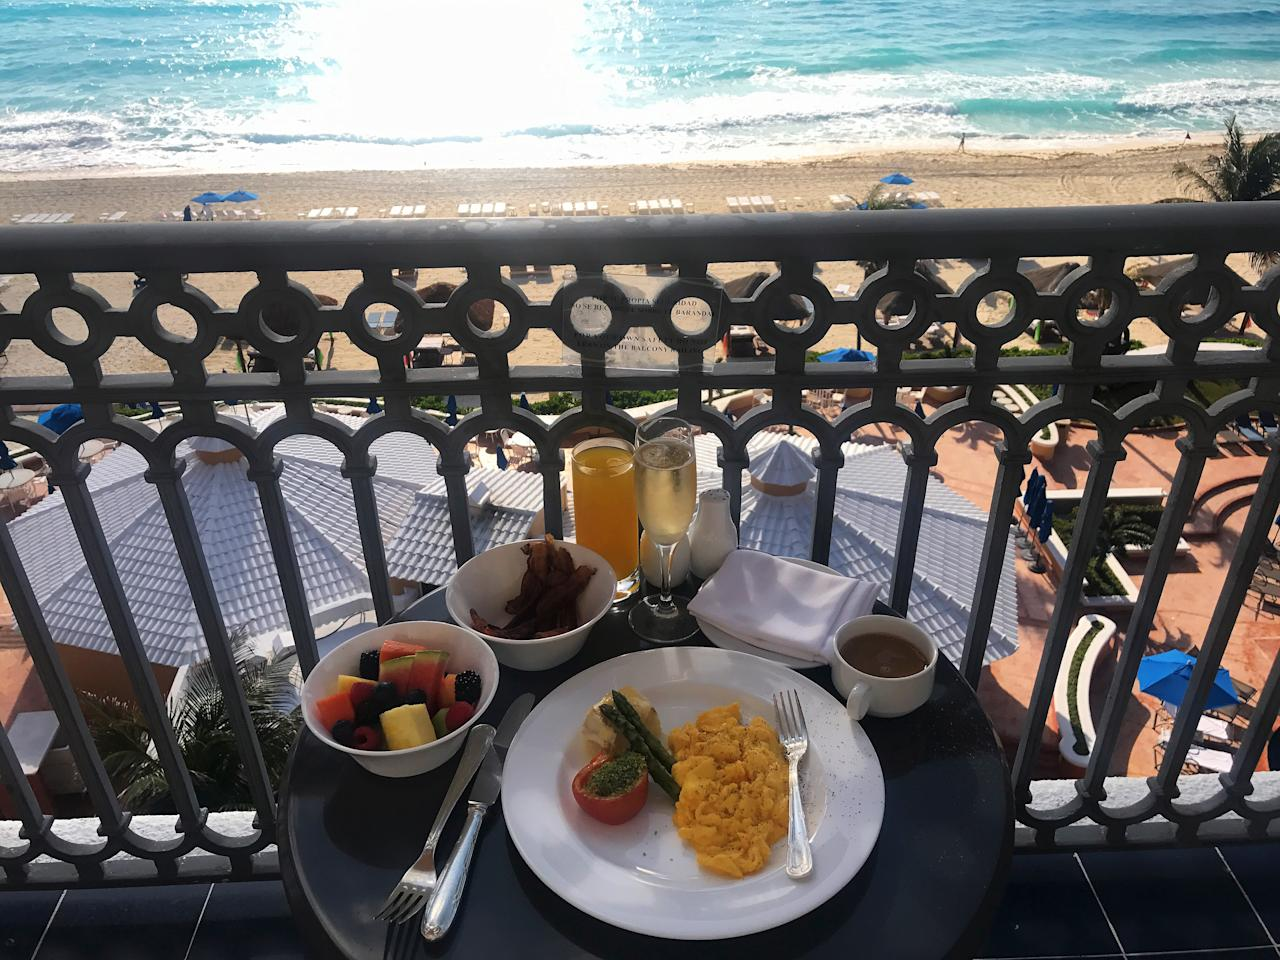 "<p>What did the girls eat to prep for their epic beach day? Eggs, bacon, fruit and more.""We had to make sure to order lots of food for a full day in the sun,"" Zuri shares.</p>"